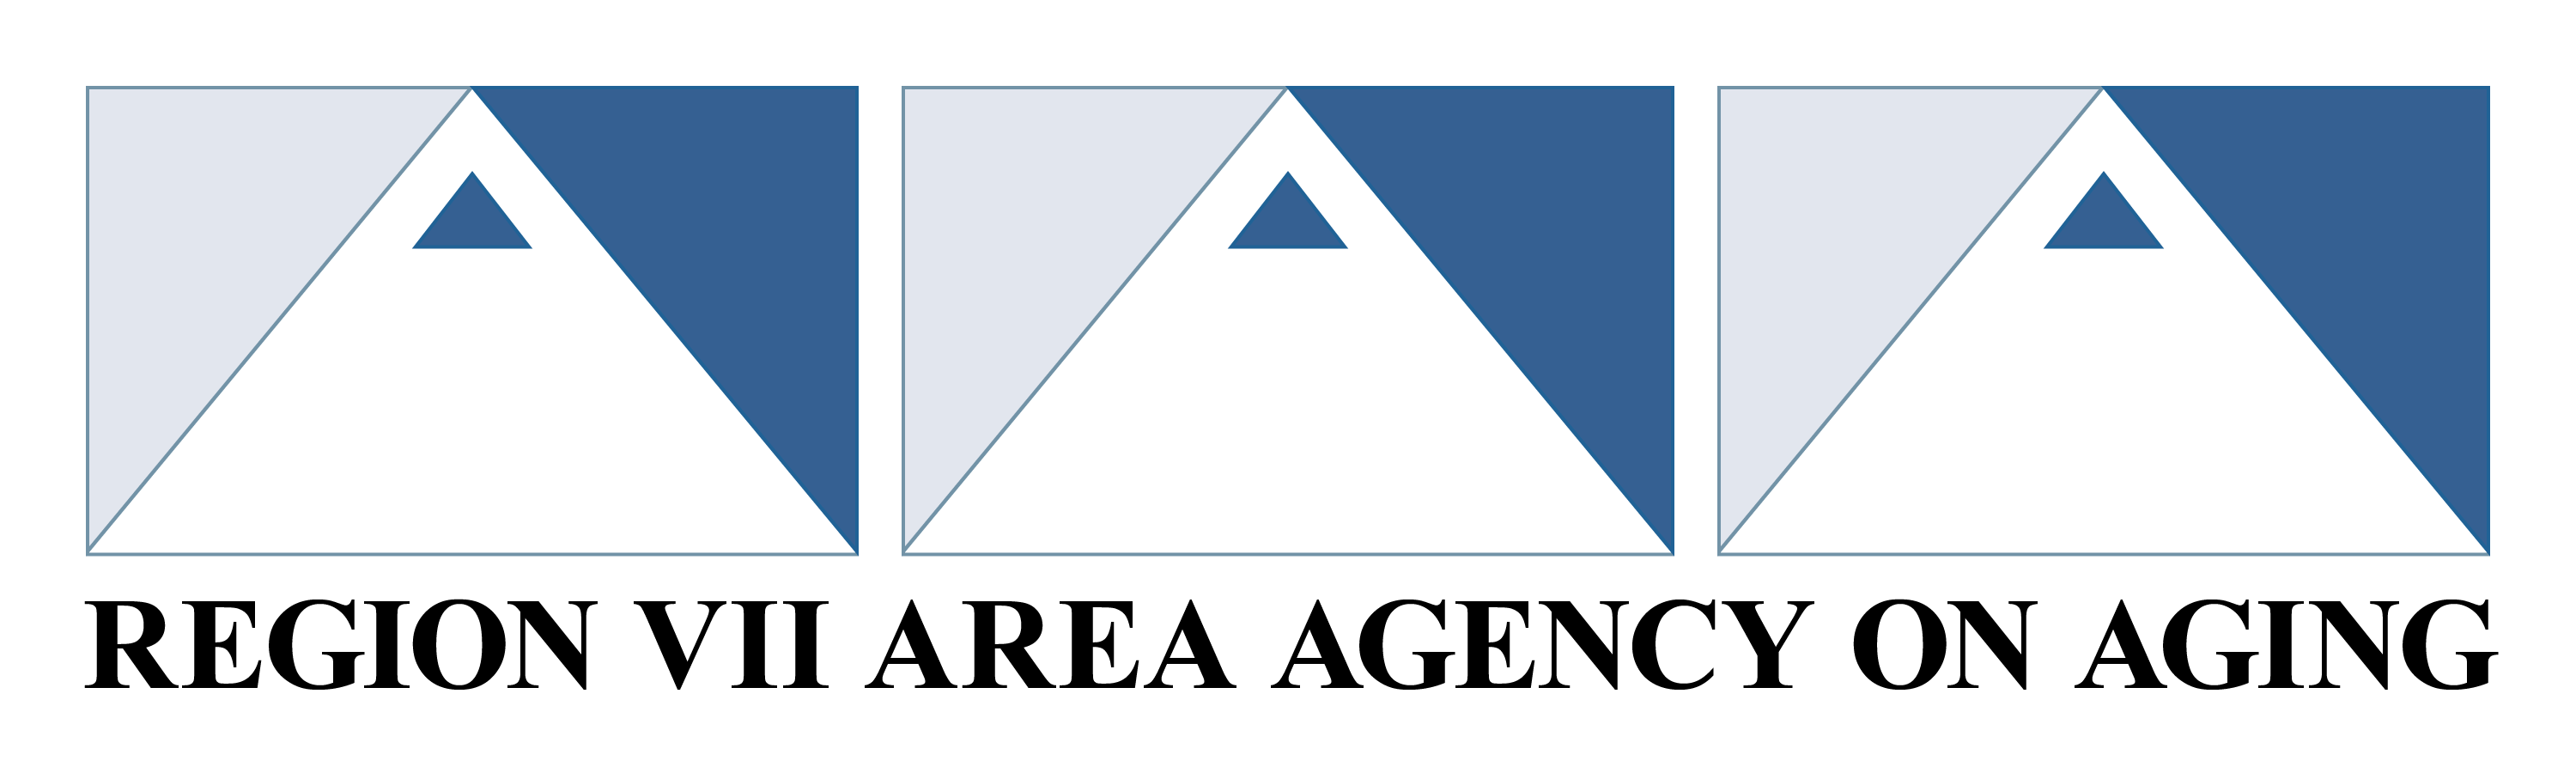 Region 7 Area Agency on Aging Logo